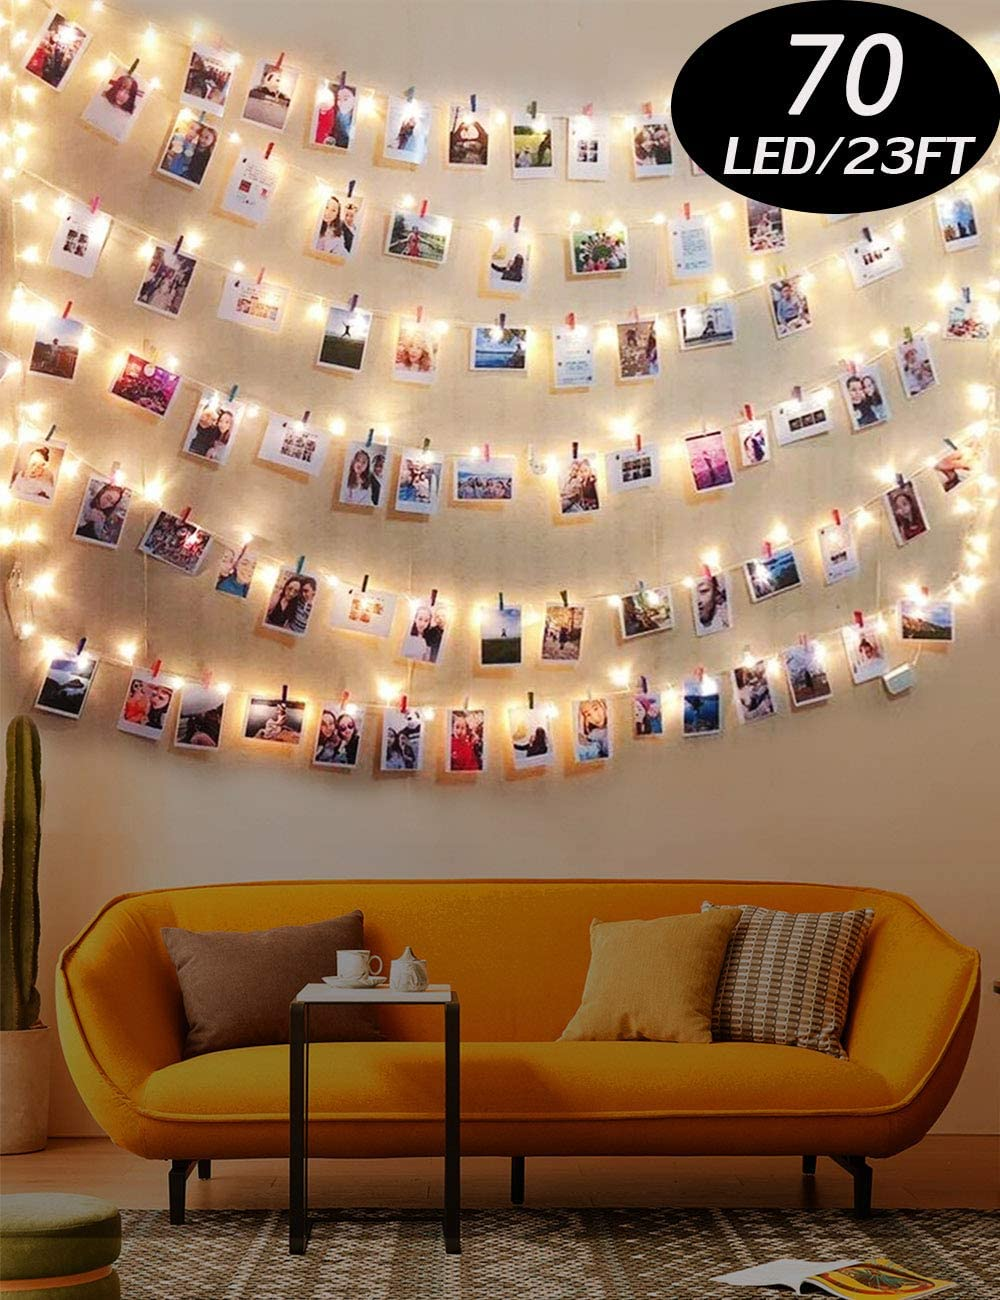 Warm White Light Photo Clip String Lights 23Ft - 70 LED Fairy Lights with 50 Clear Clips for Hanging Pictures, Perfect Dorm Bedroom Wall Decor Wedding Christmas Decoration(Battery Operated)